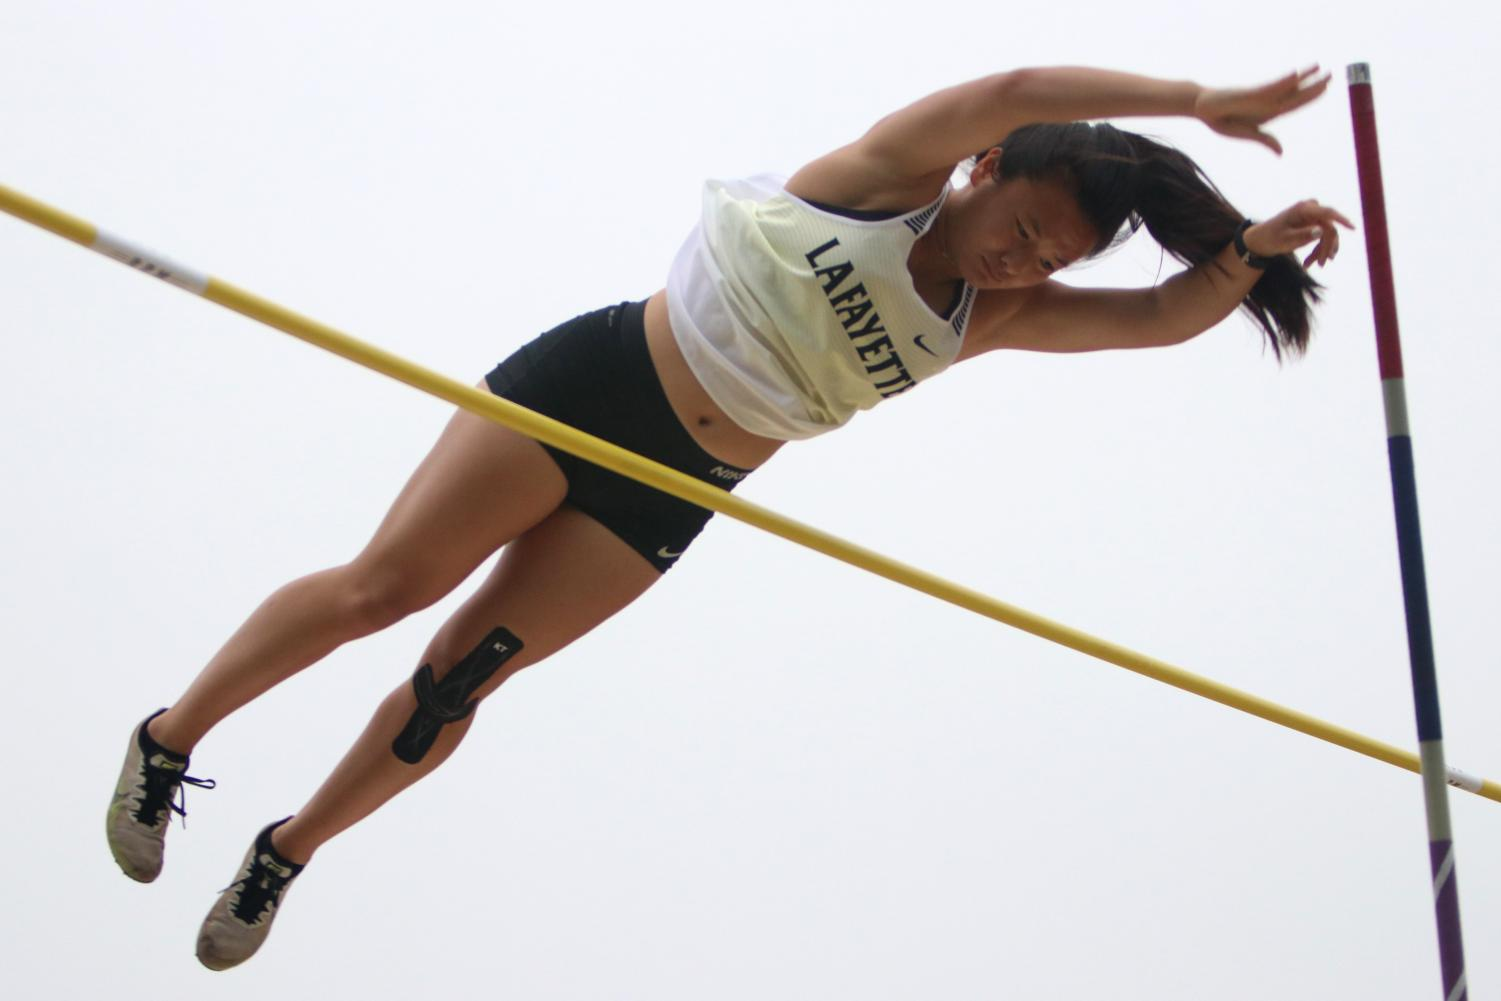 While+competing+in+pole+vault%2C+senior+Ellie+Schilling+leaps+over+the+bar.+After+breaking+the+school+record+in+pole+vault+three+times+this+season%2C+Schilling+claimed+the+fist+place+Suburban+Yellow+Conference+title+in+the+event+by+clearing+the+bar+set+at+11+feet.+